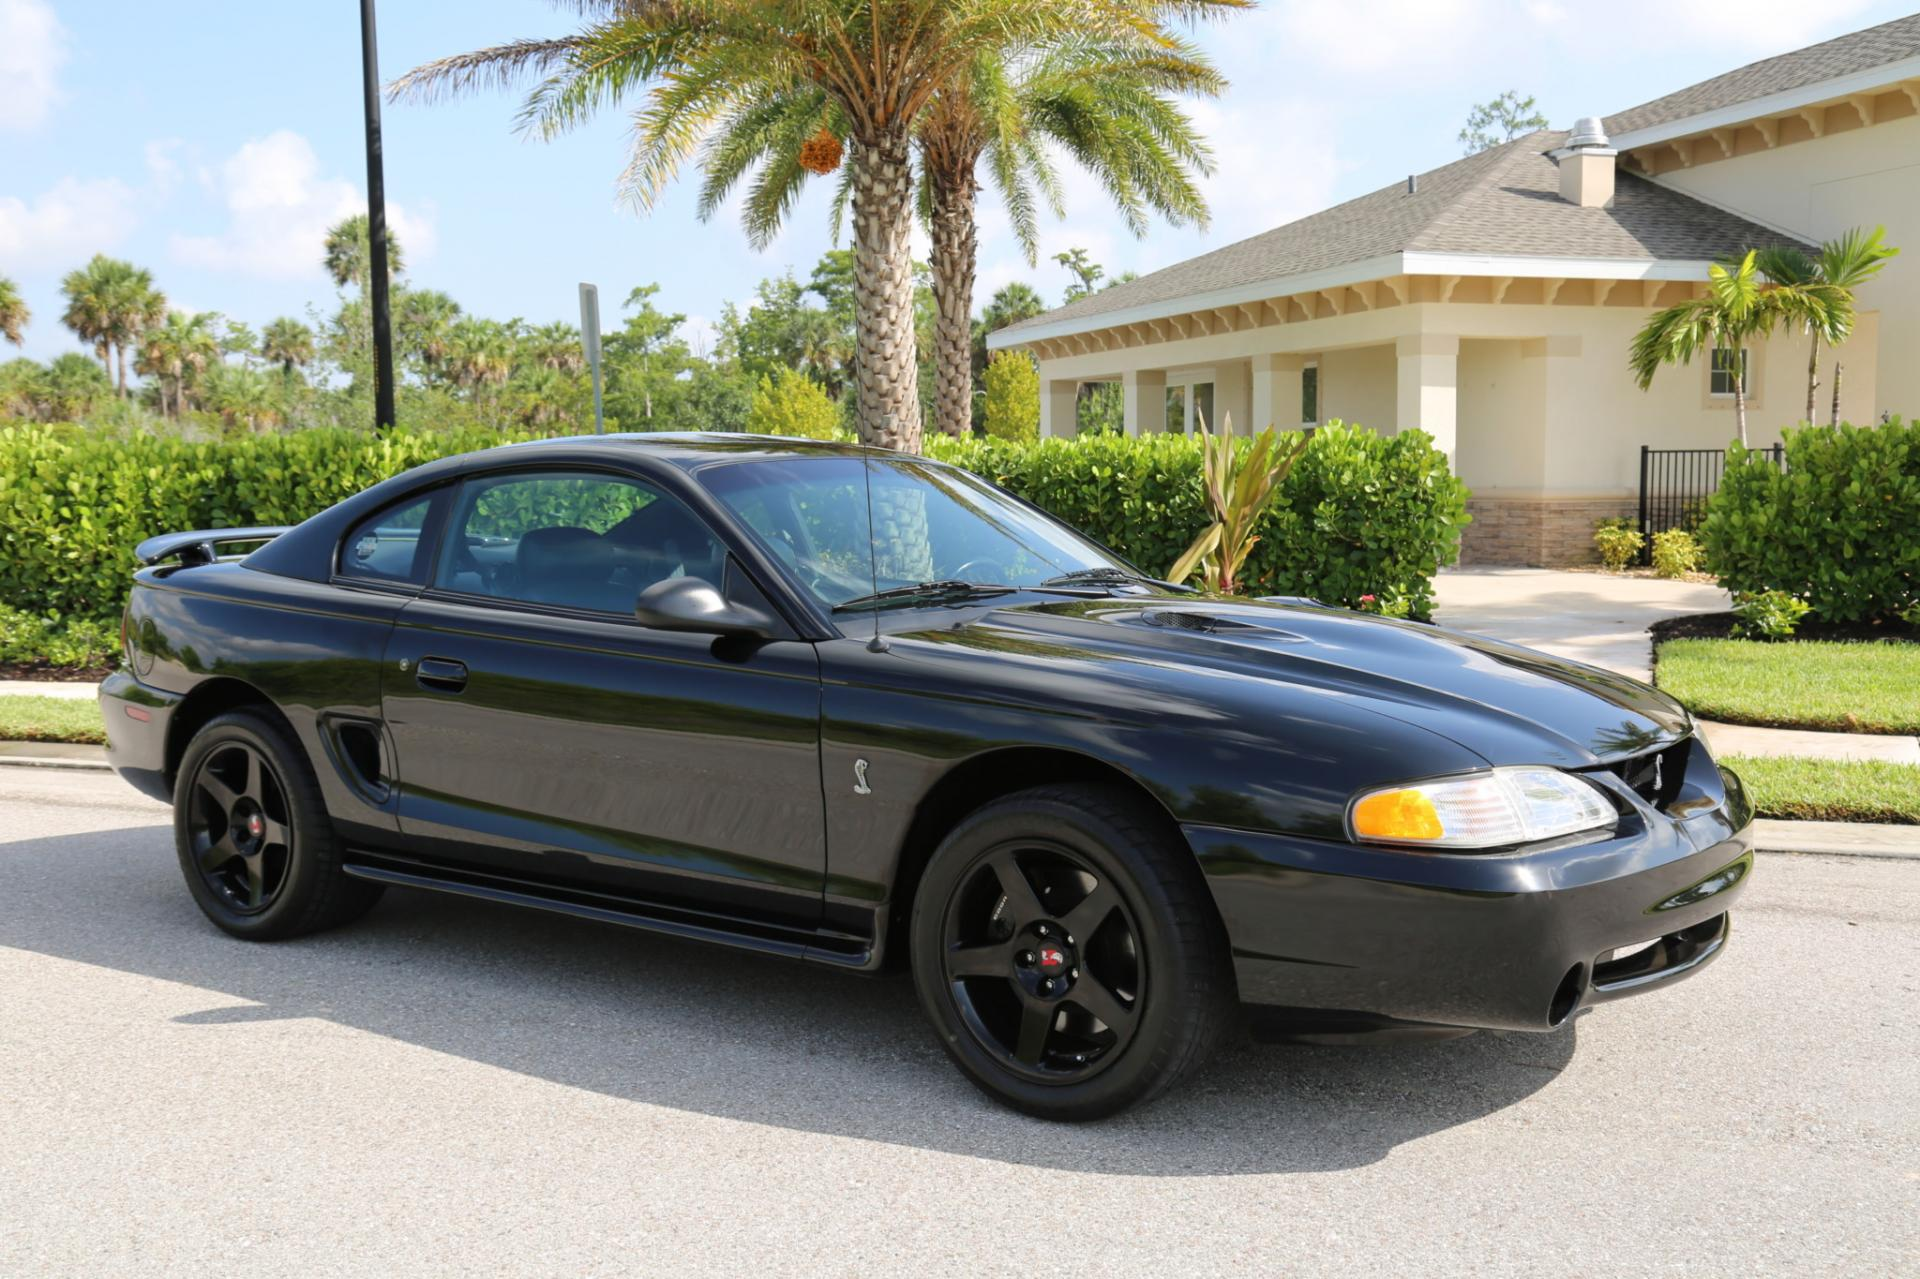 Used 1996 Mustang Cobra SVT for sale $22,500 at Muscle Cars for Sale Inc. in Fort Myers FL 33912 7